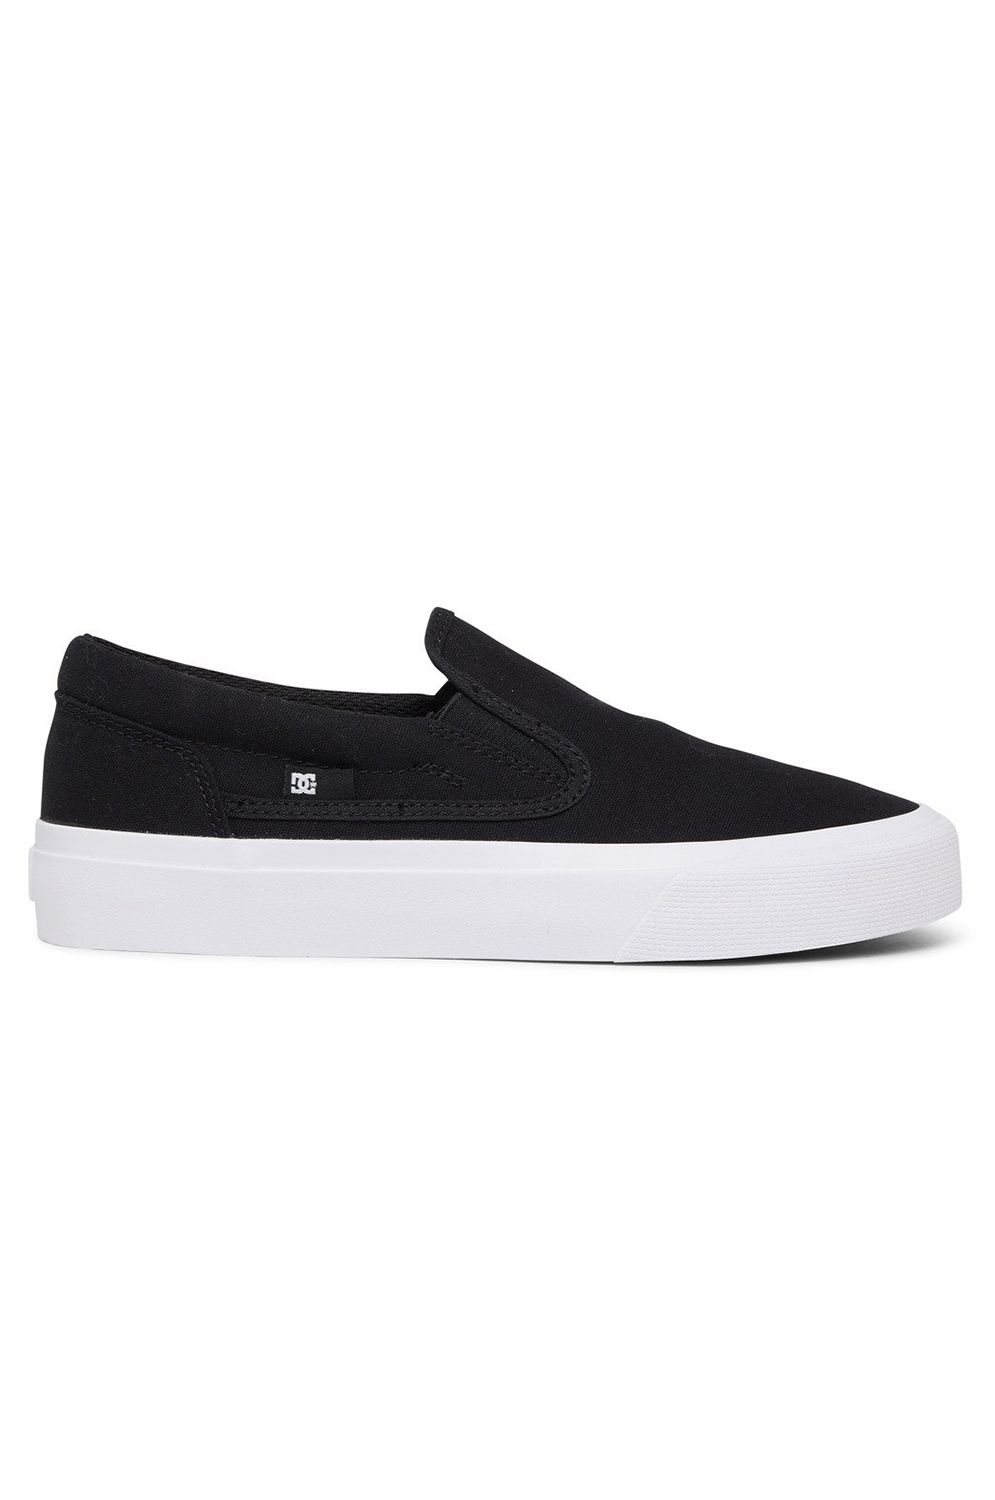 Tenis DC Shoes TRASE SLIP Black/White